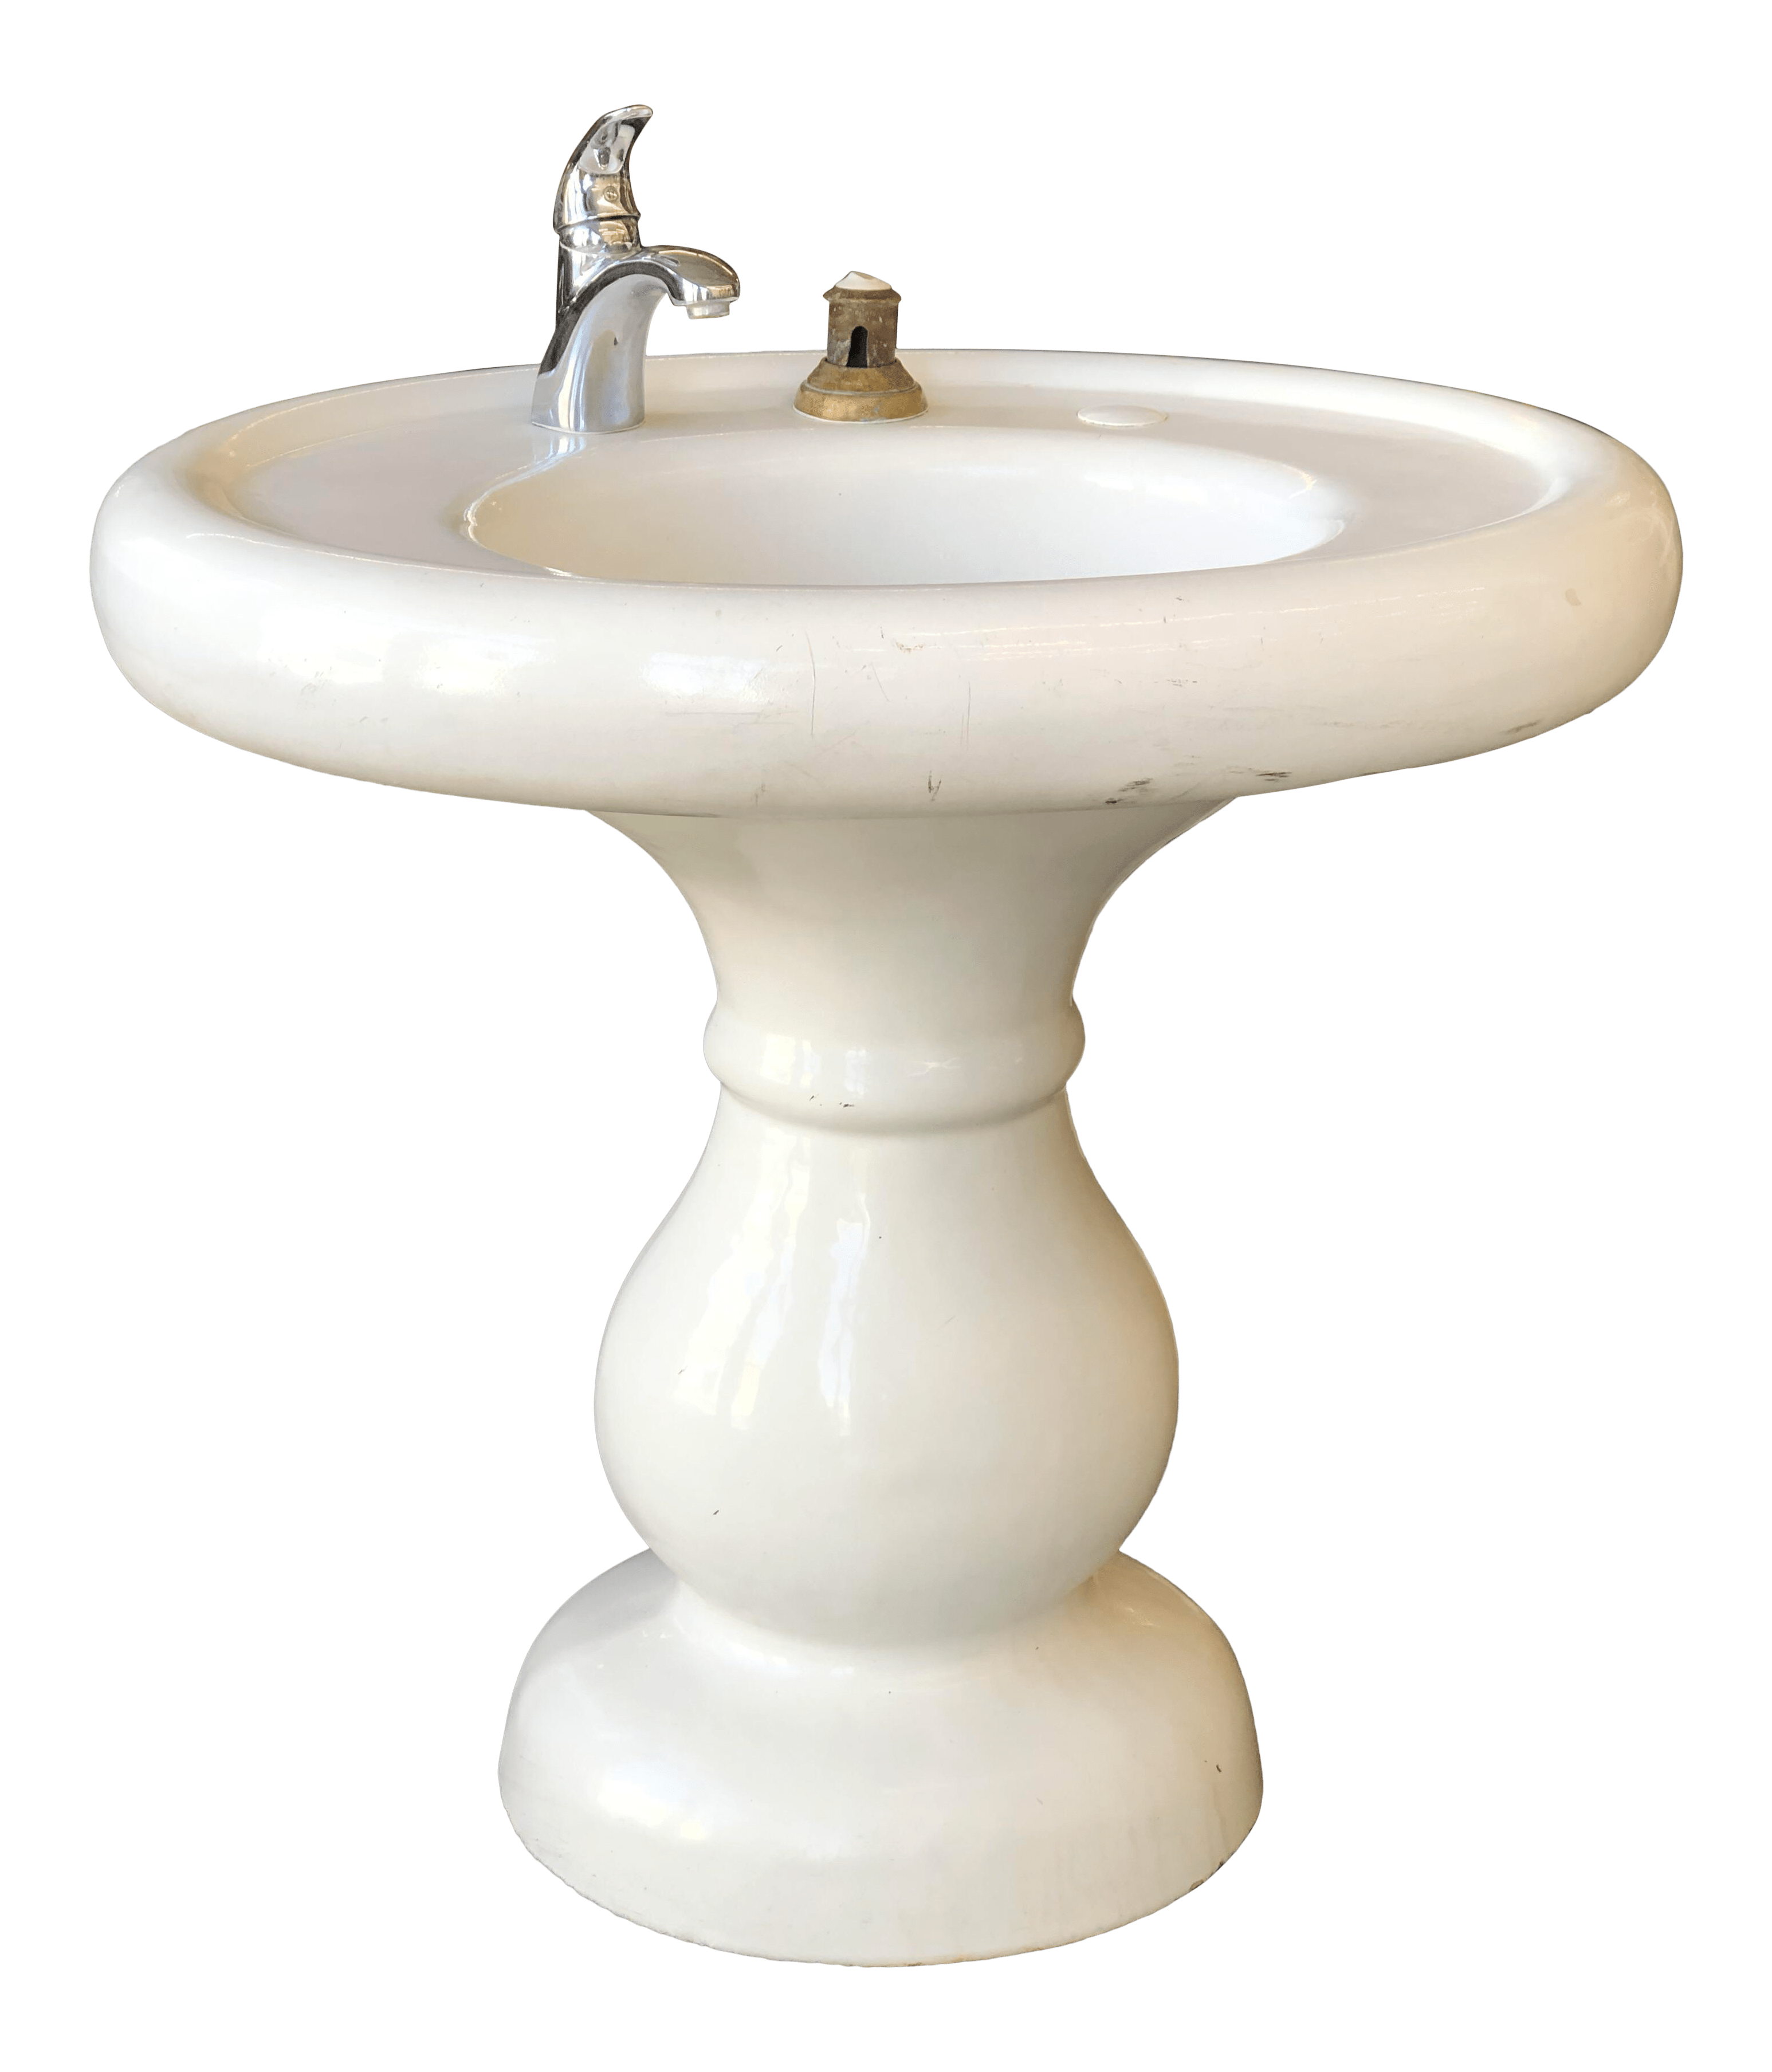 early 20th century vintage maewest style cast iron pedestal sink